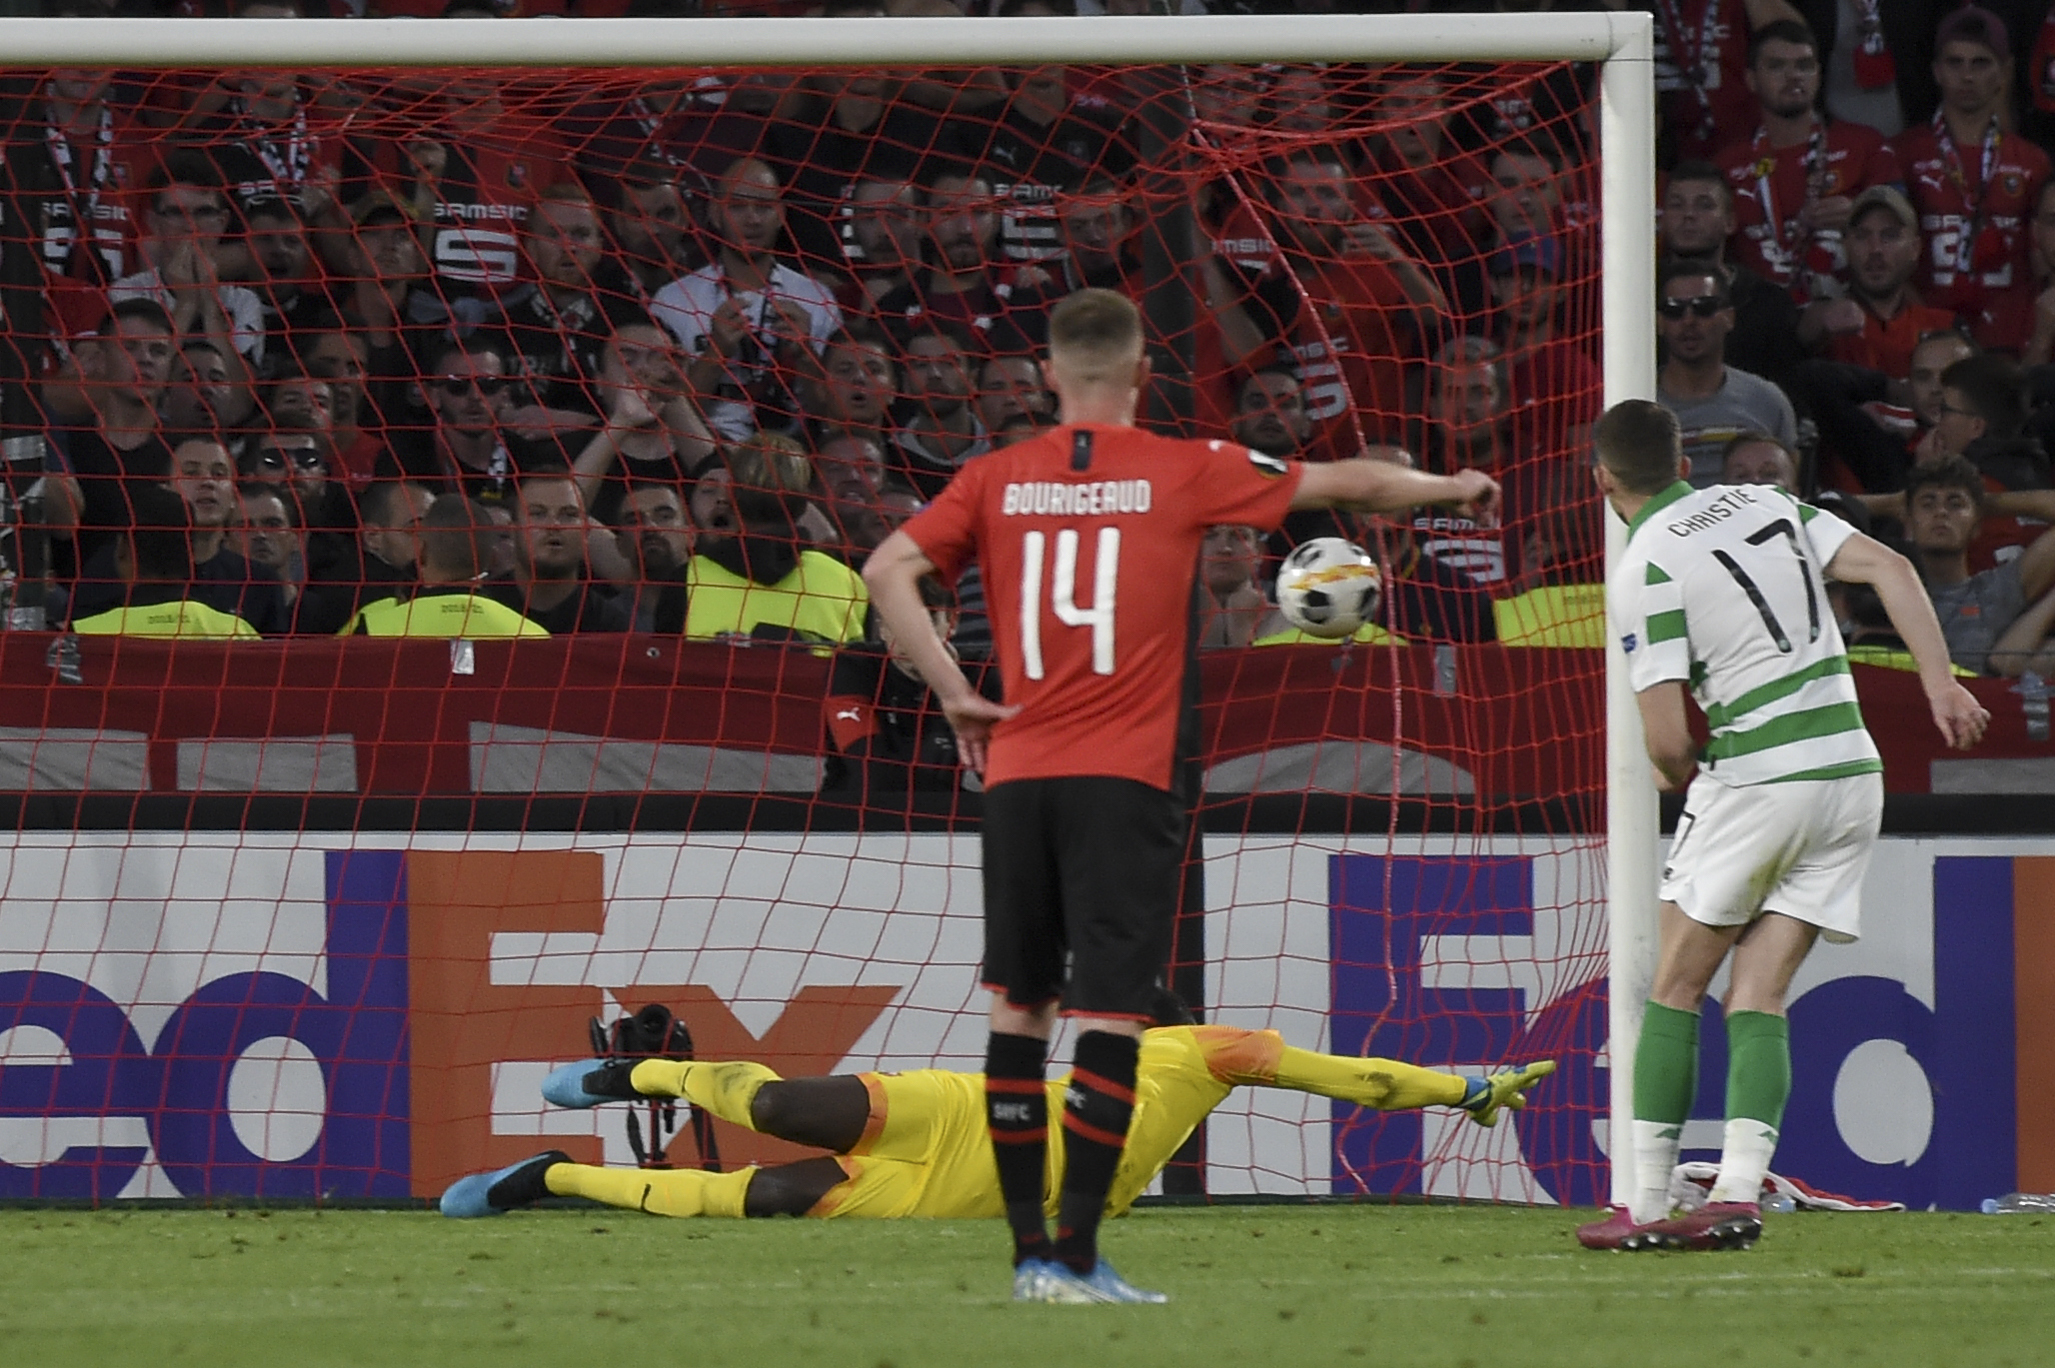 Stade Rennais 1 Celtic 1: Christie makes sure Ajer doesn't pay penalty for blunder in impressive Celtic showing